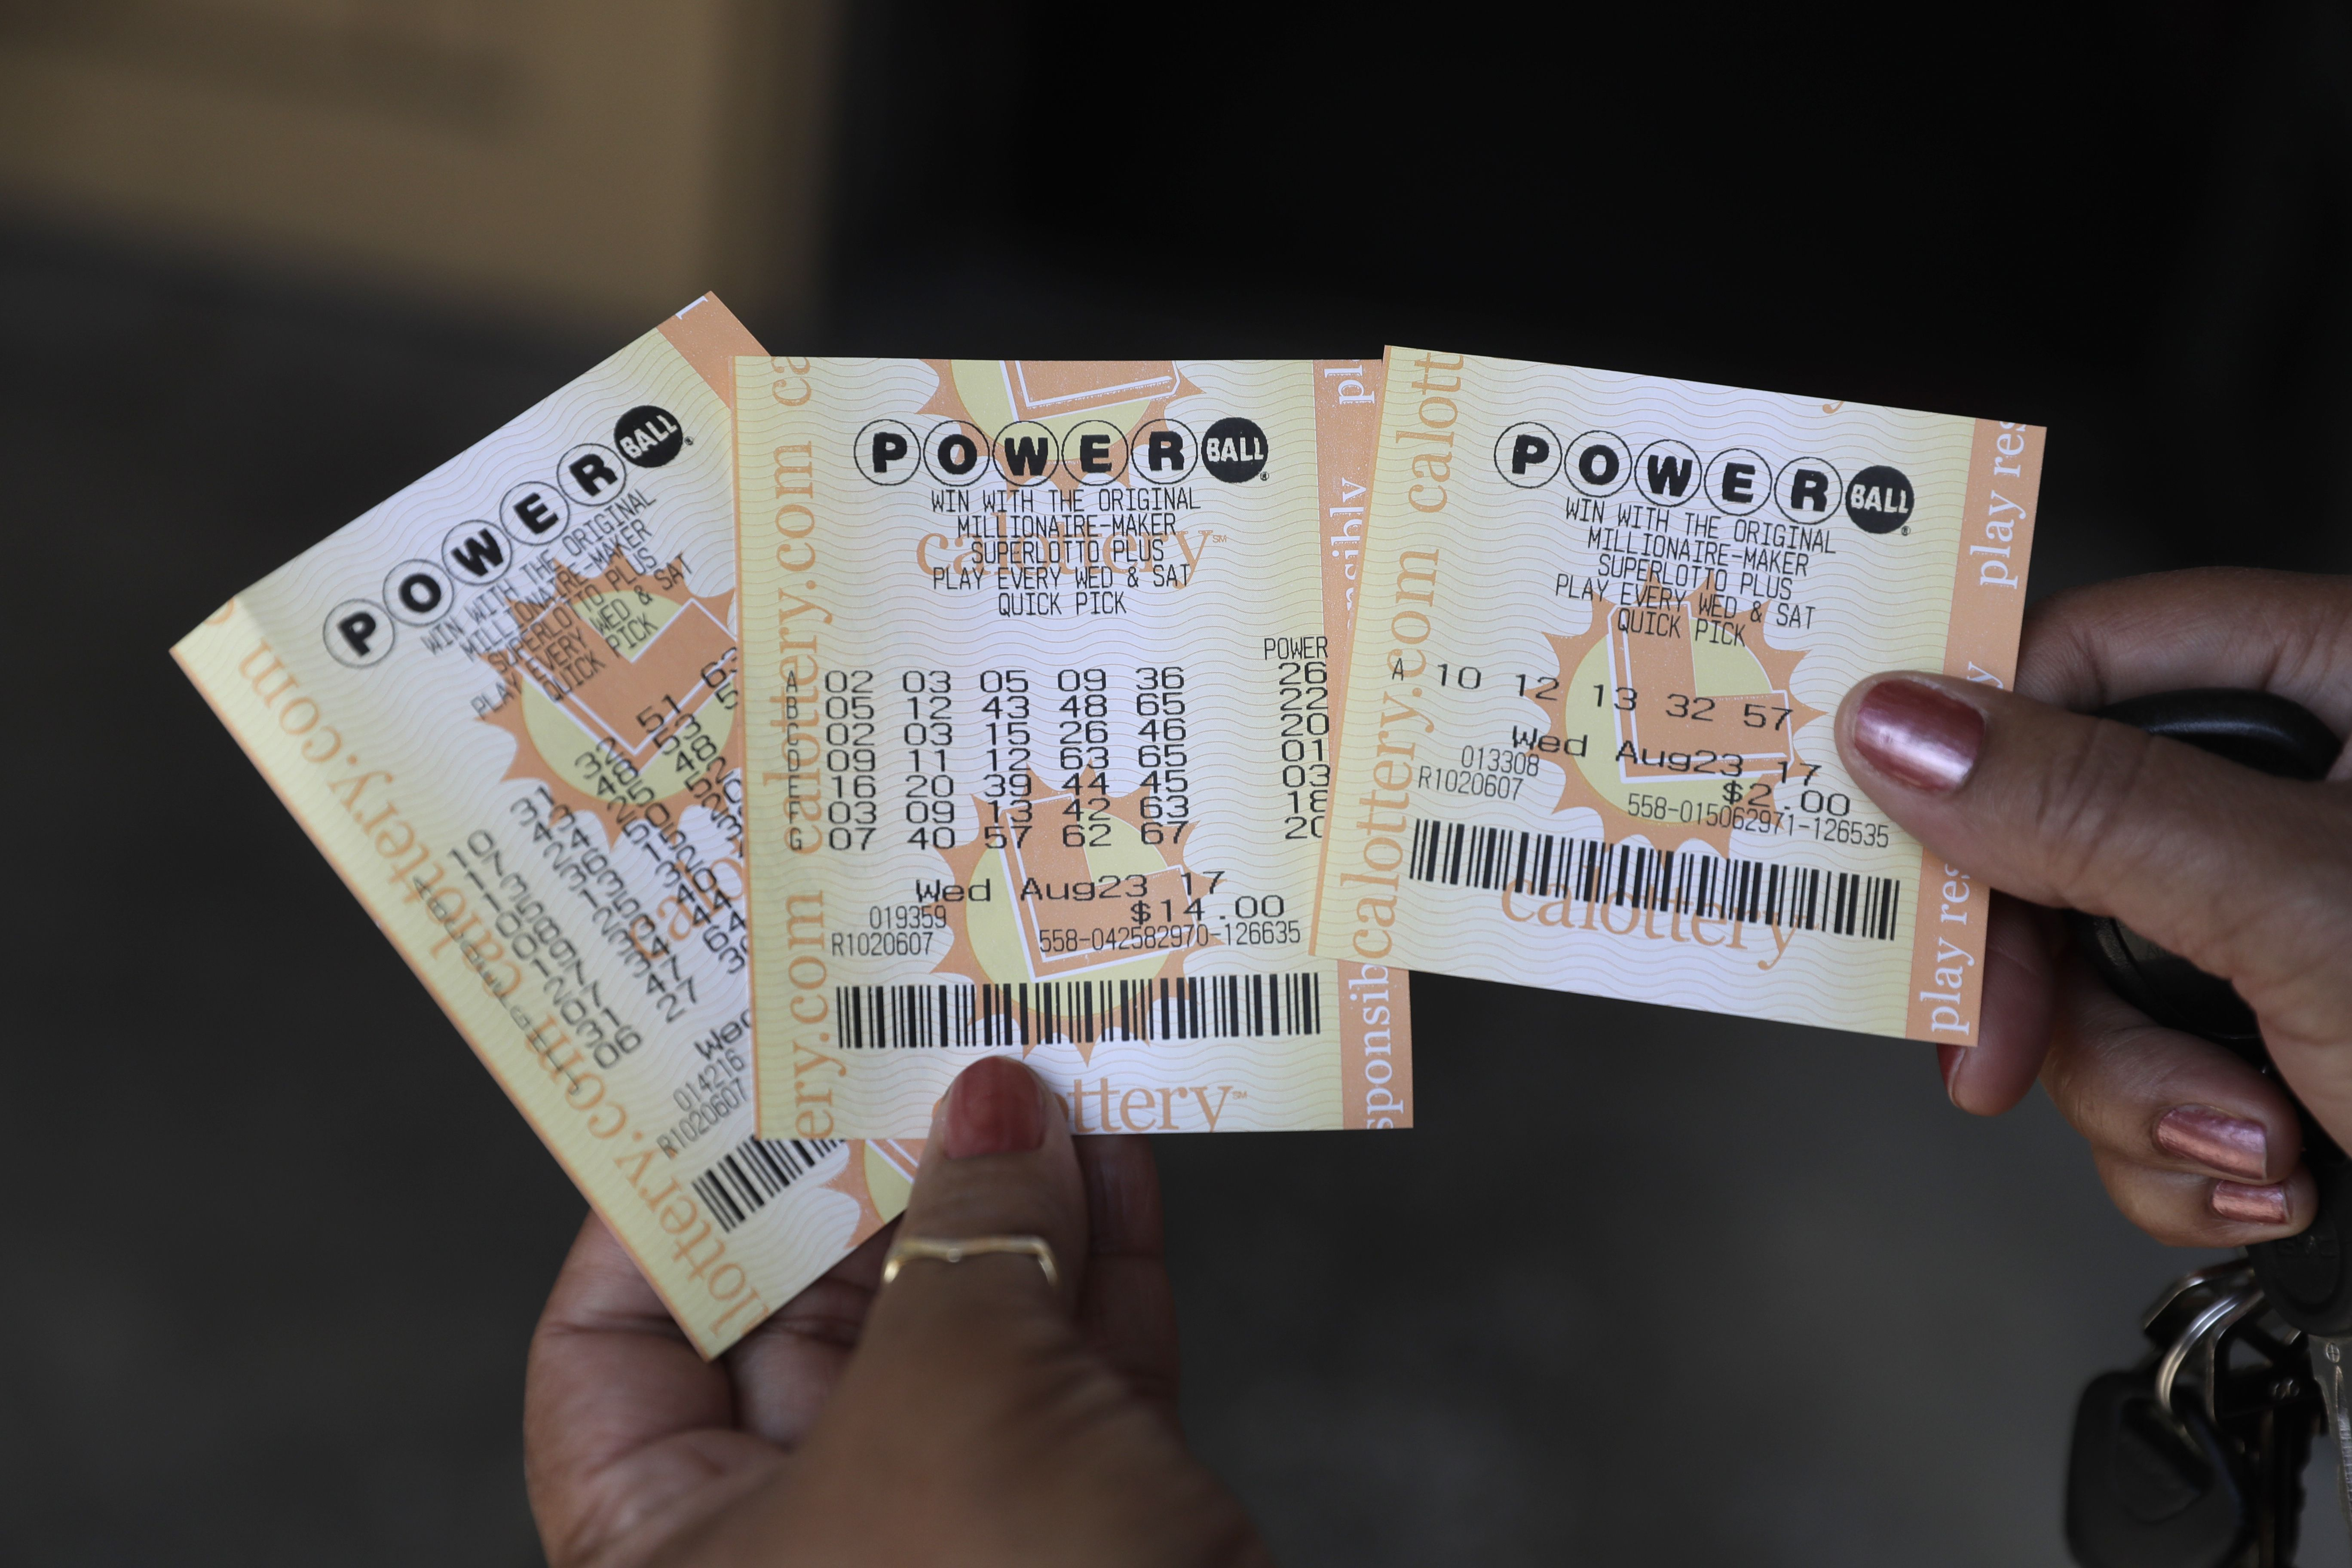 Powerball at $750 million: 4th largest lottery jackpot in US